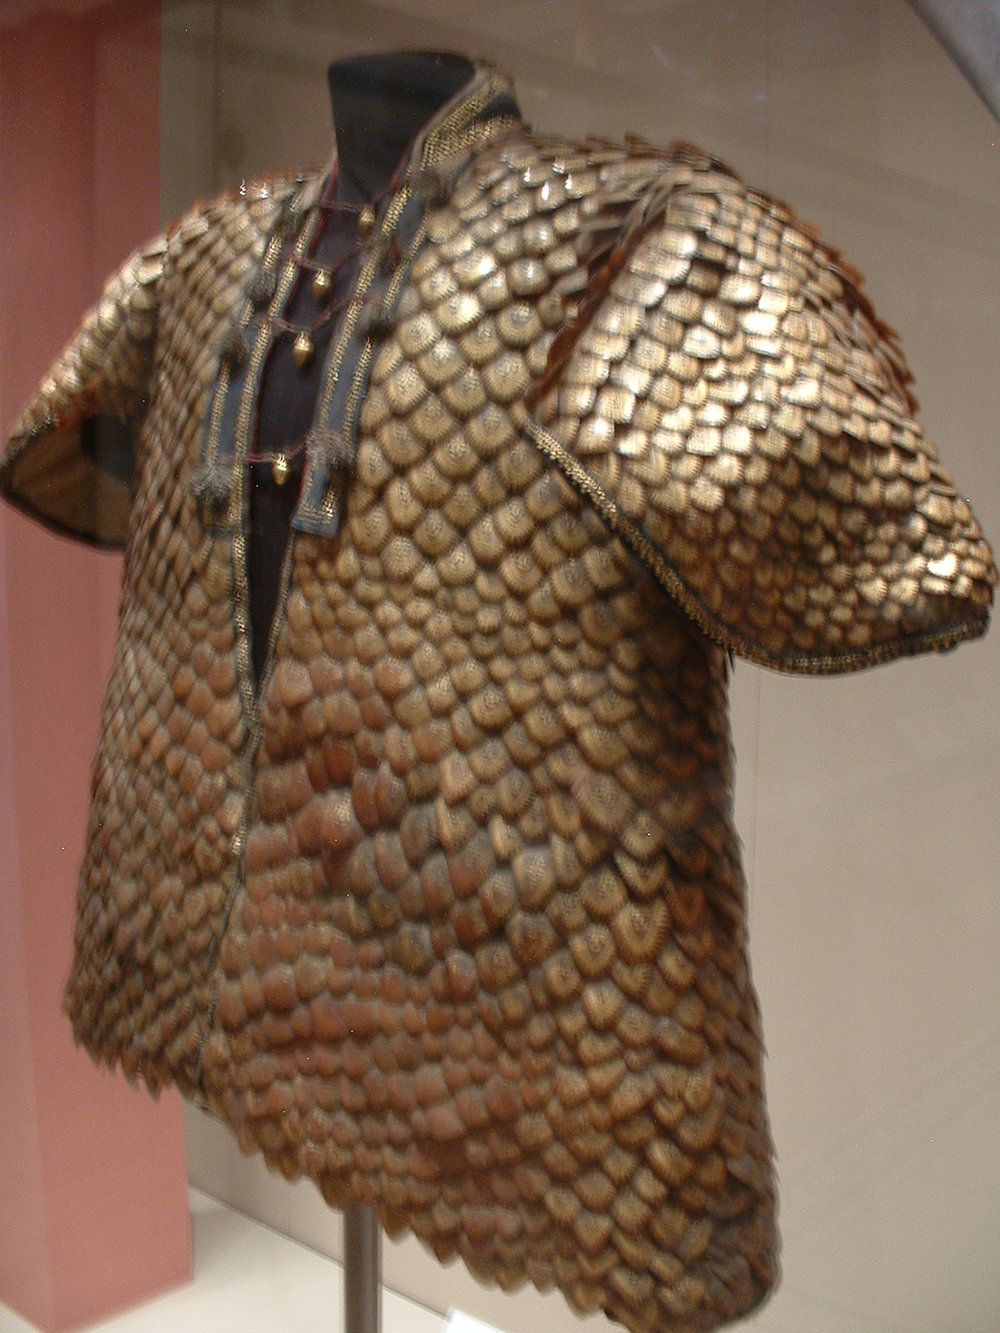 Pangolin-scale armor presented to King George III of England in 1820.